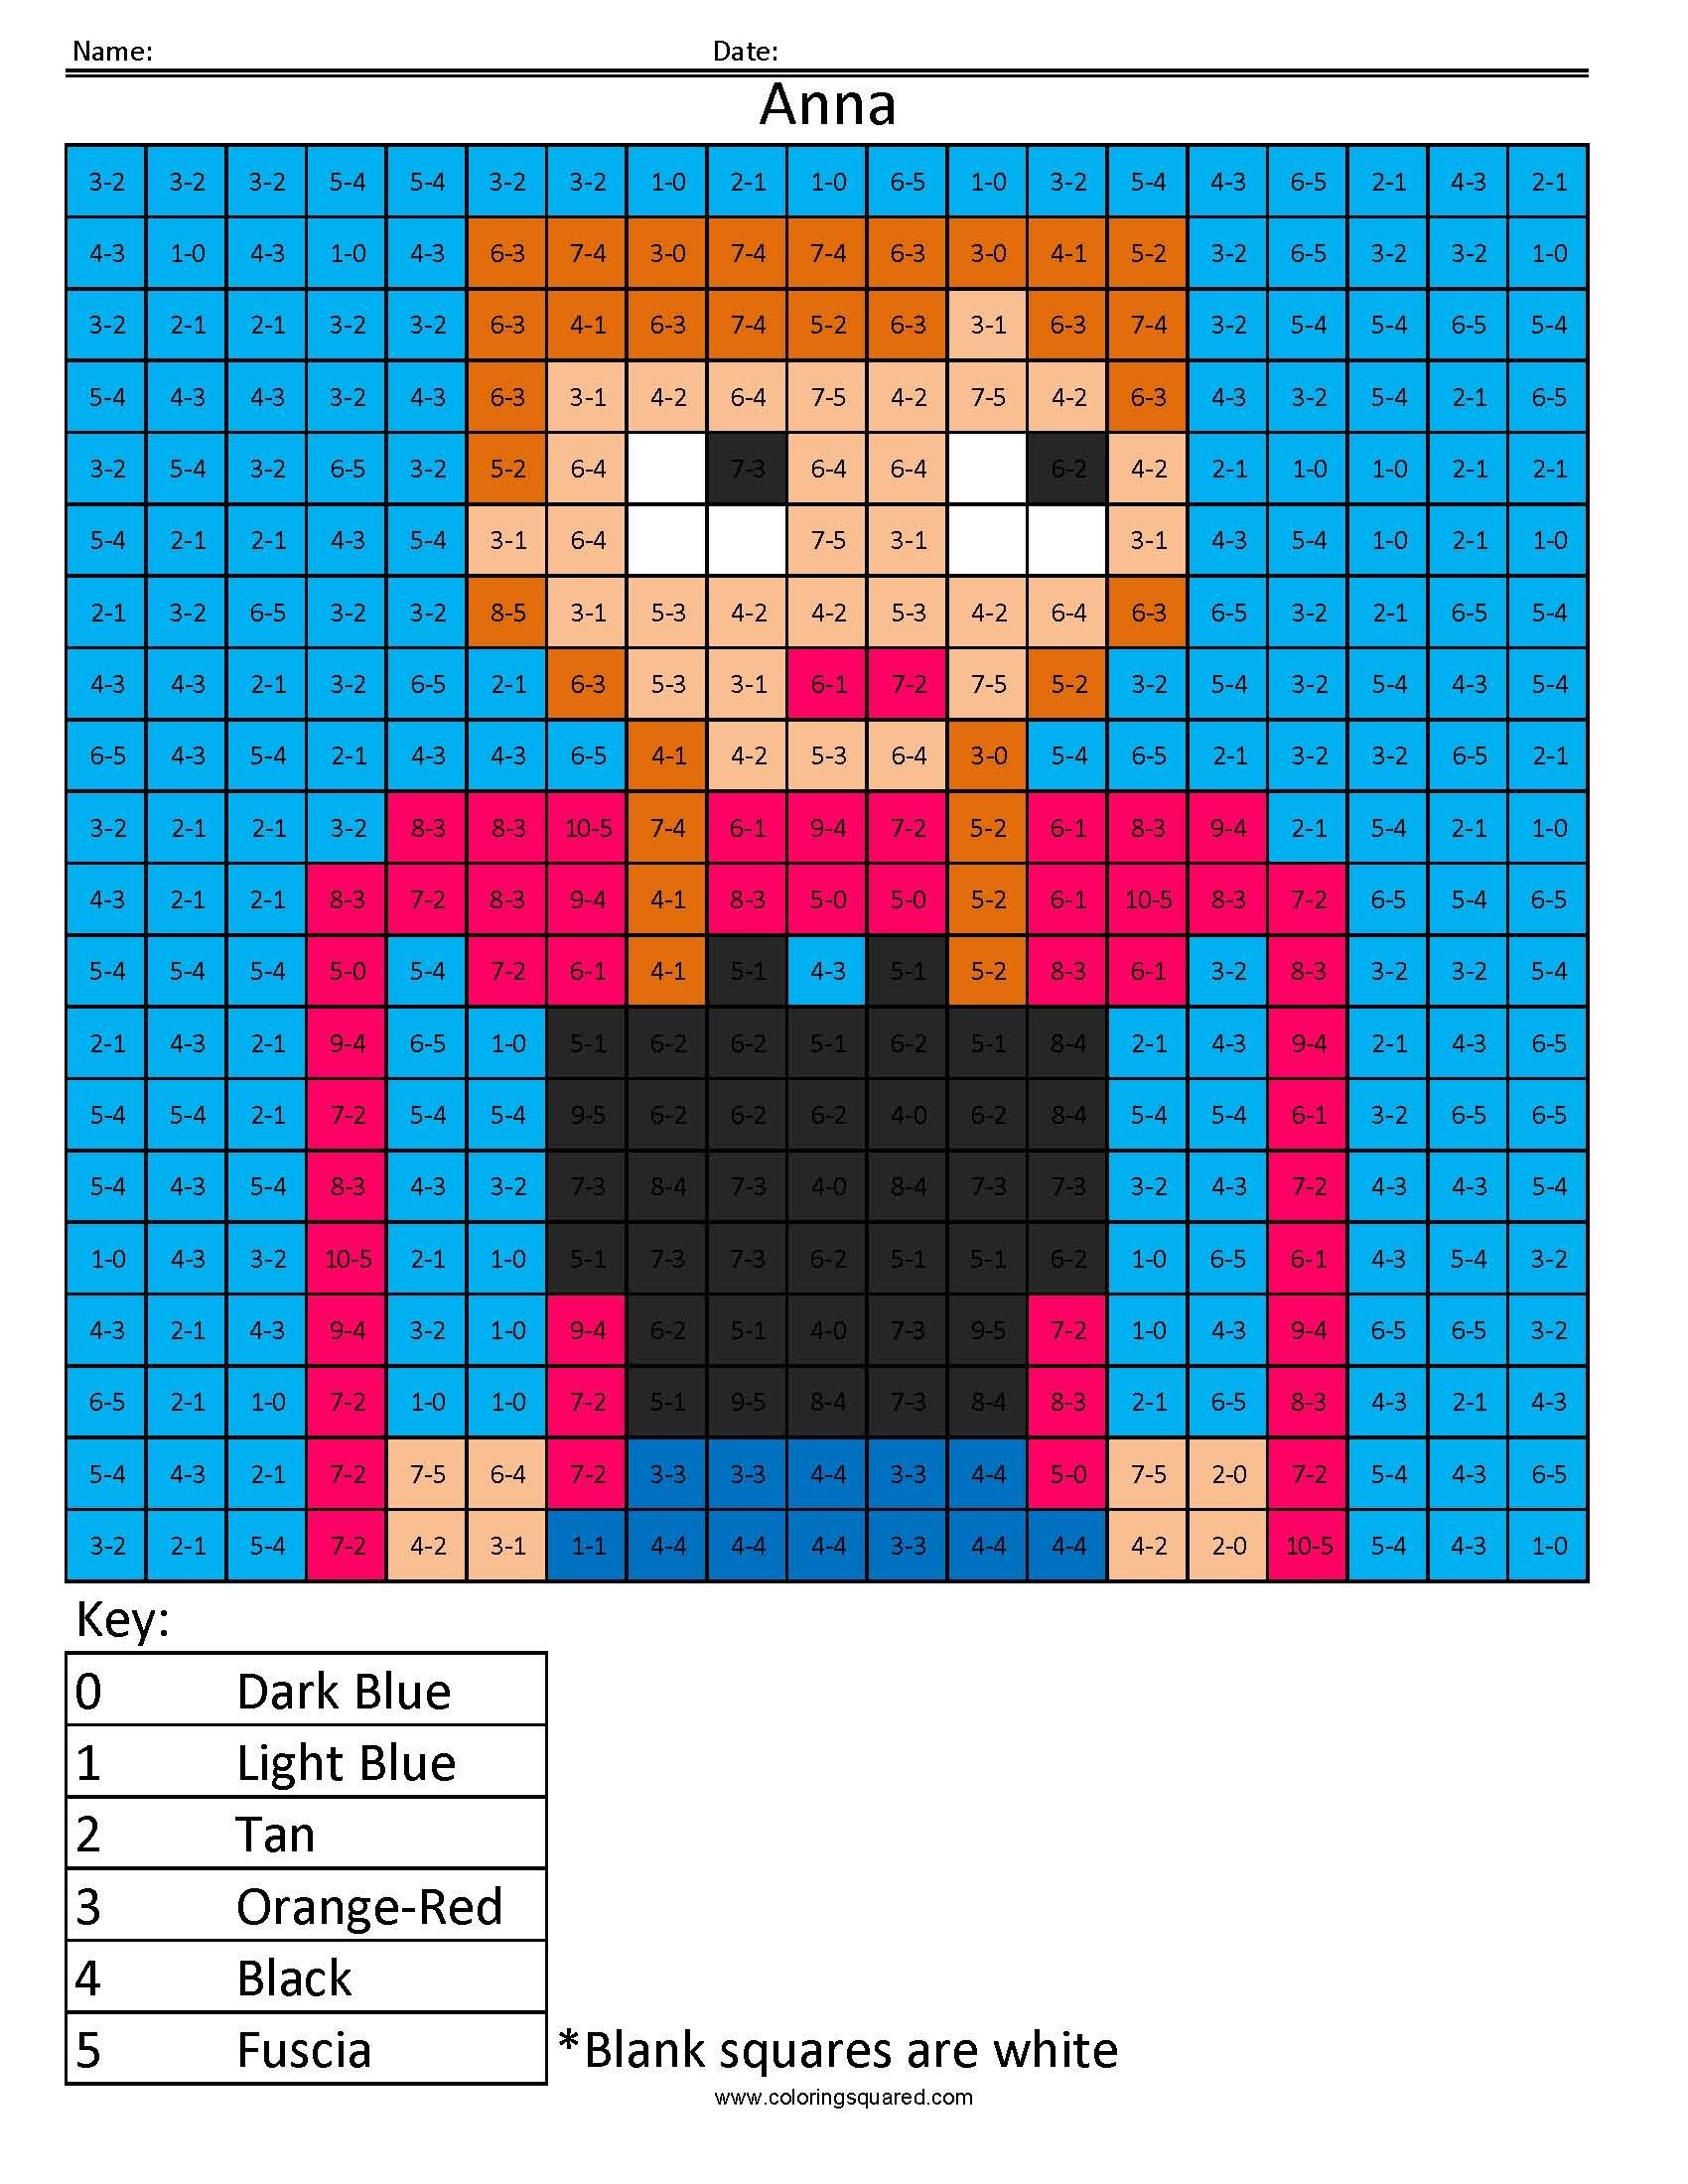 Printable coloring pages with math problems - We Have A Ton Of Amazing Disney Princess Coloring Pages For You To Check Out Here Learn Addition And Subtraction Math Facts With These Fun Pixel Puzzles